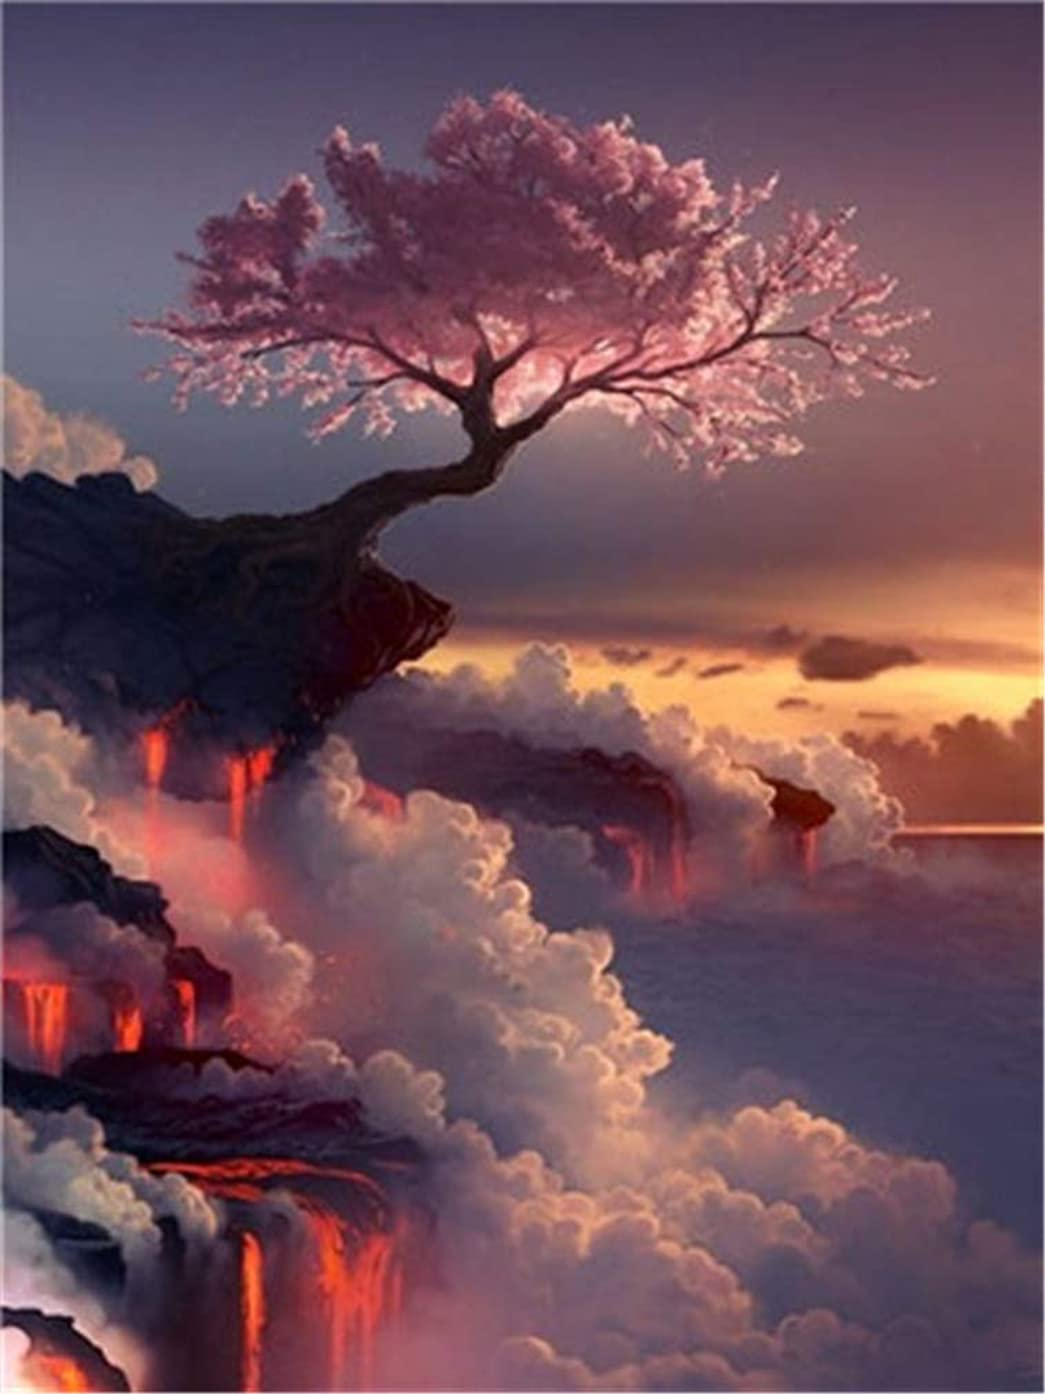 YEESAM ART DIY Paint by Numbers for Adults Beginner Kids, Japanese Volcano Pink Cherry Blossoms Tree 16x20 inch Linen Canvas Acrylic Stress Less Number Painting Gifts (Pink, Without Frame)